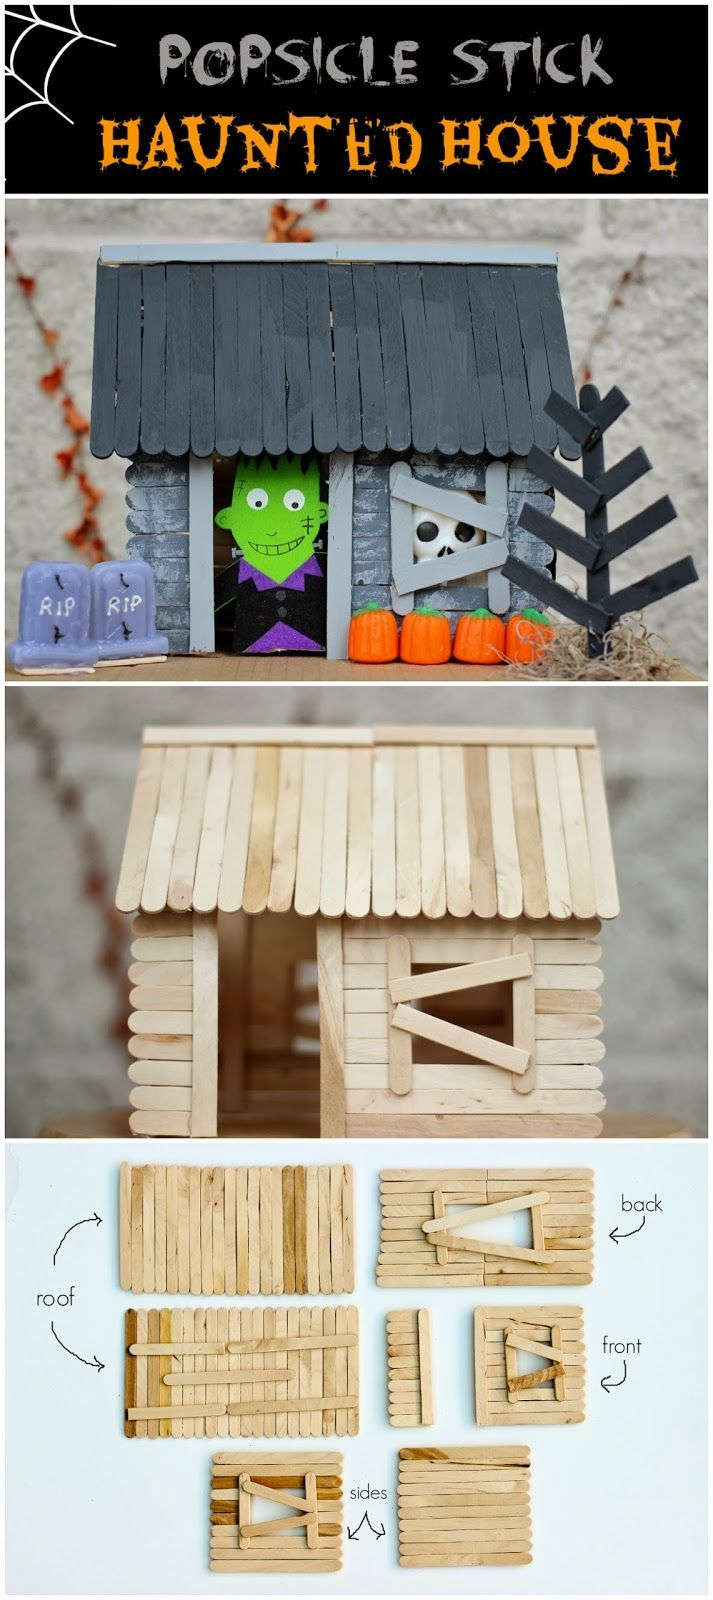 How to make a #Popsicle Stick Haunted House via Hannah Mestel Mestel Mestel Mestel! #ambassador